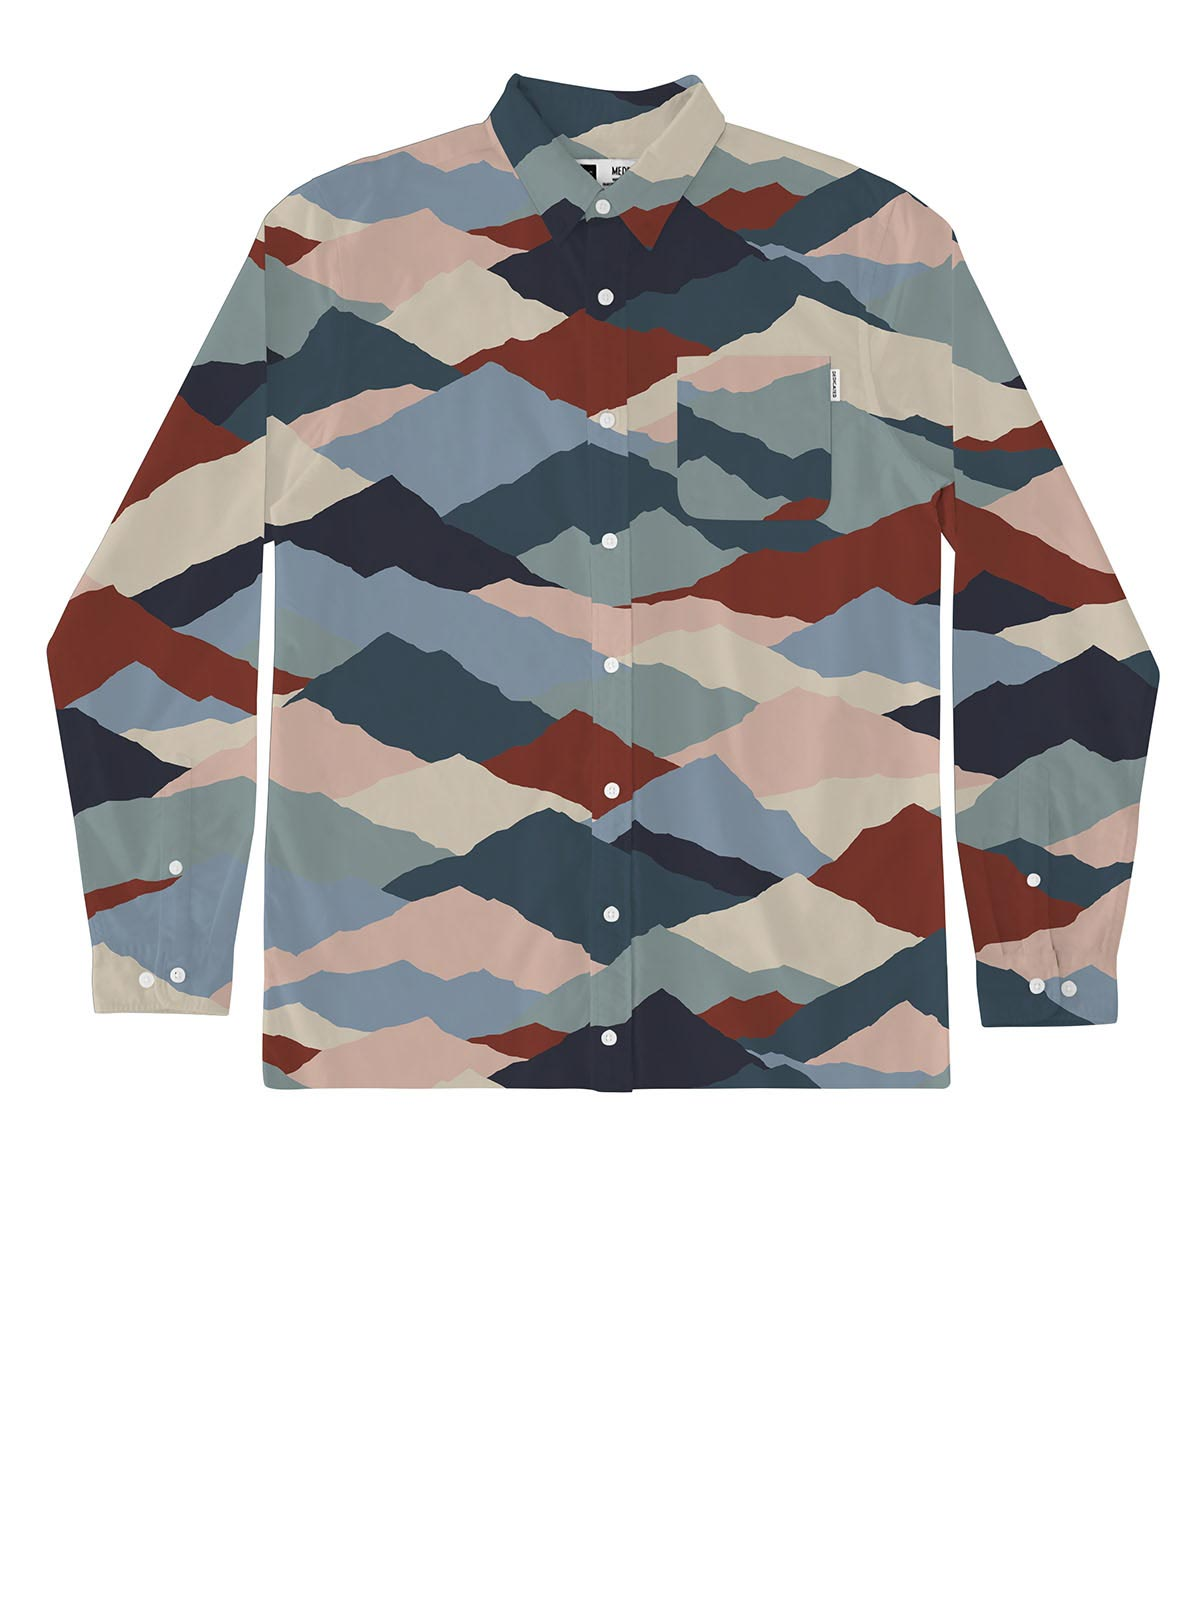 Varberg Mountain Peaks Shirt - Multi